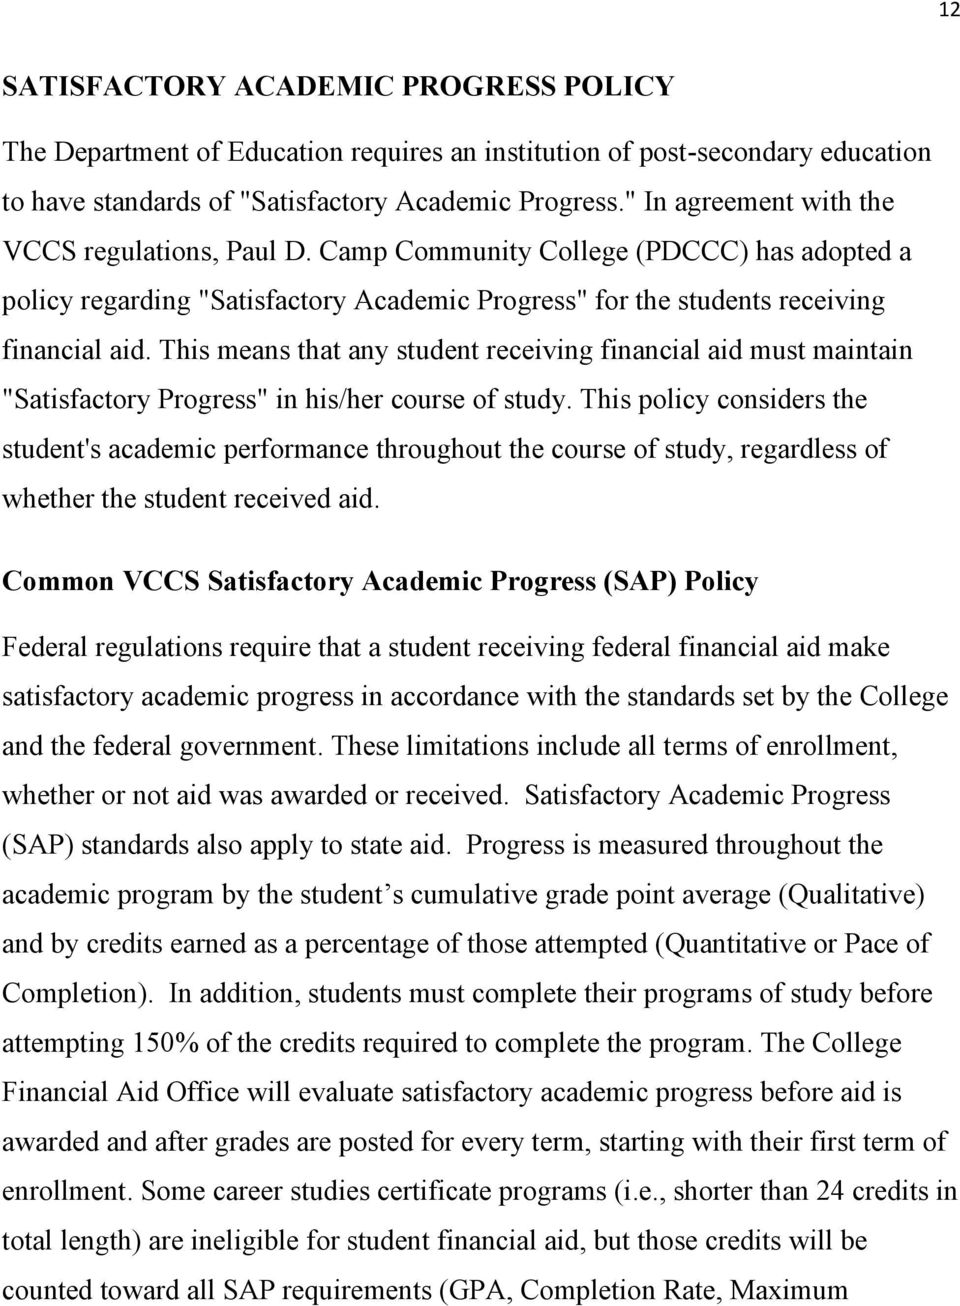 "This means that any student receiving financial aid must maintain ""Satisfactory Progress"" in his/her course of study."